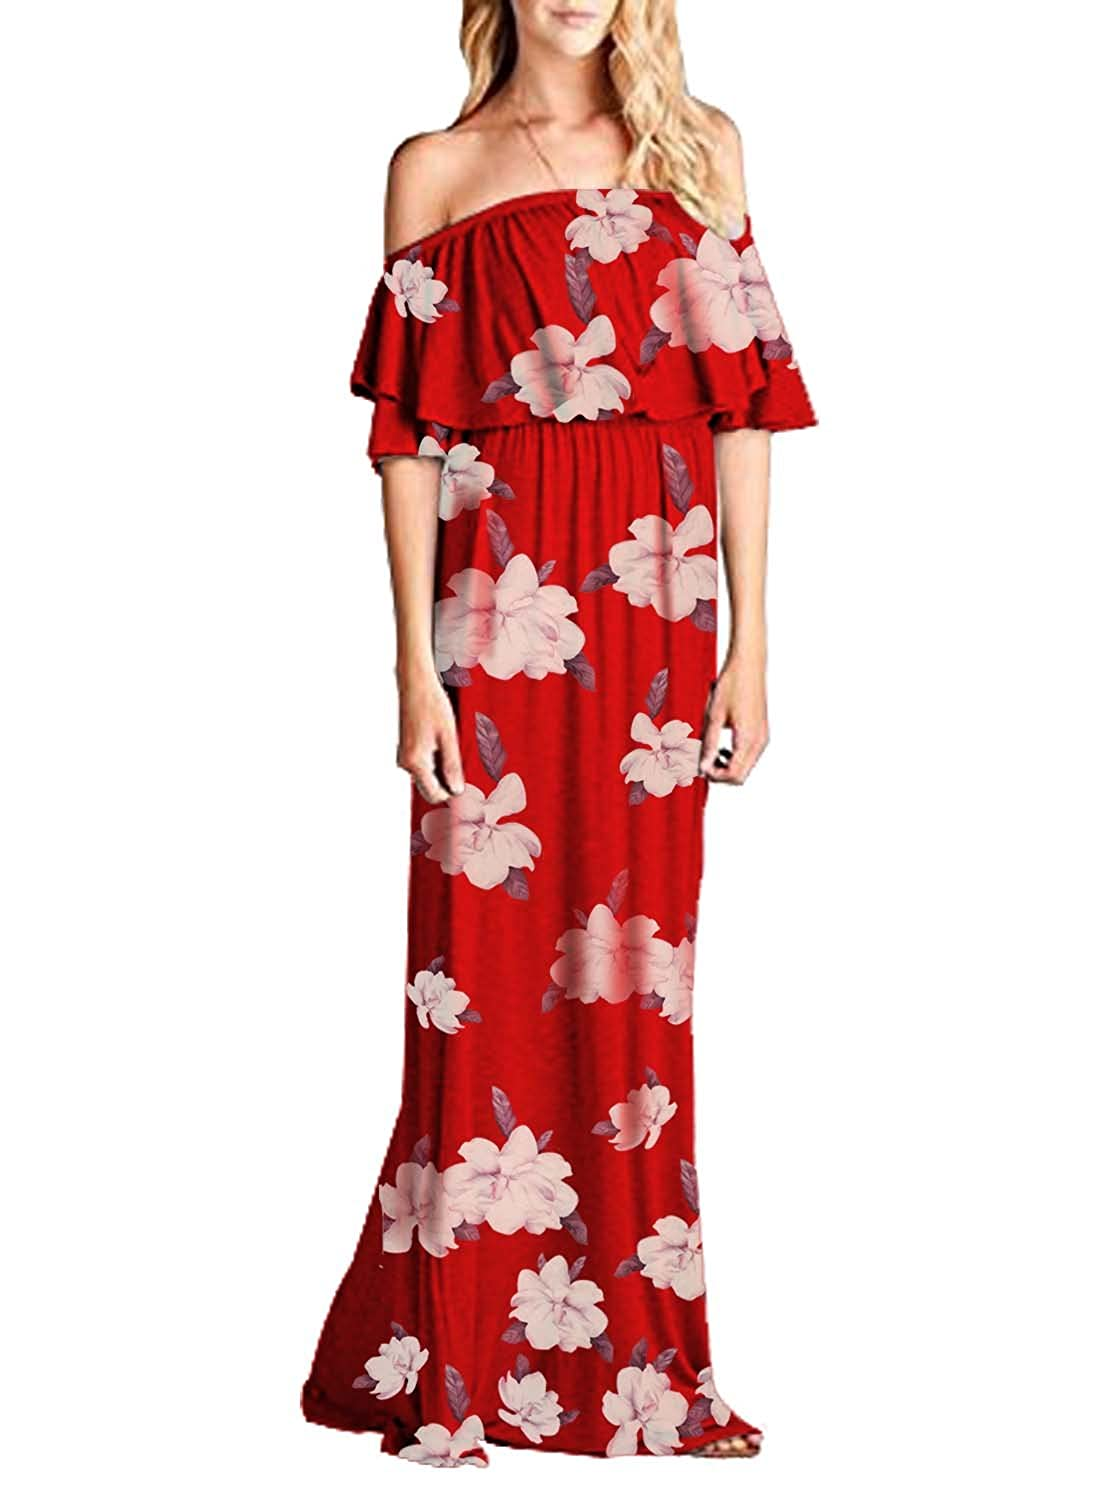 MIHOLL Womens Off The Shoulder Ruffle Party Dresses Maxi Casual Dress